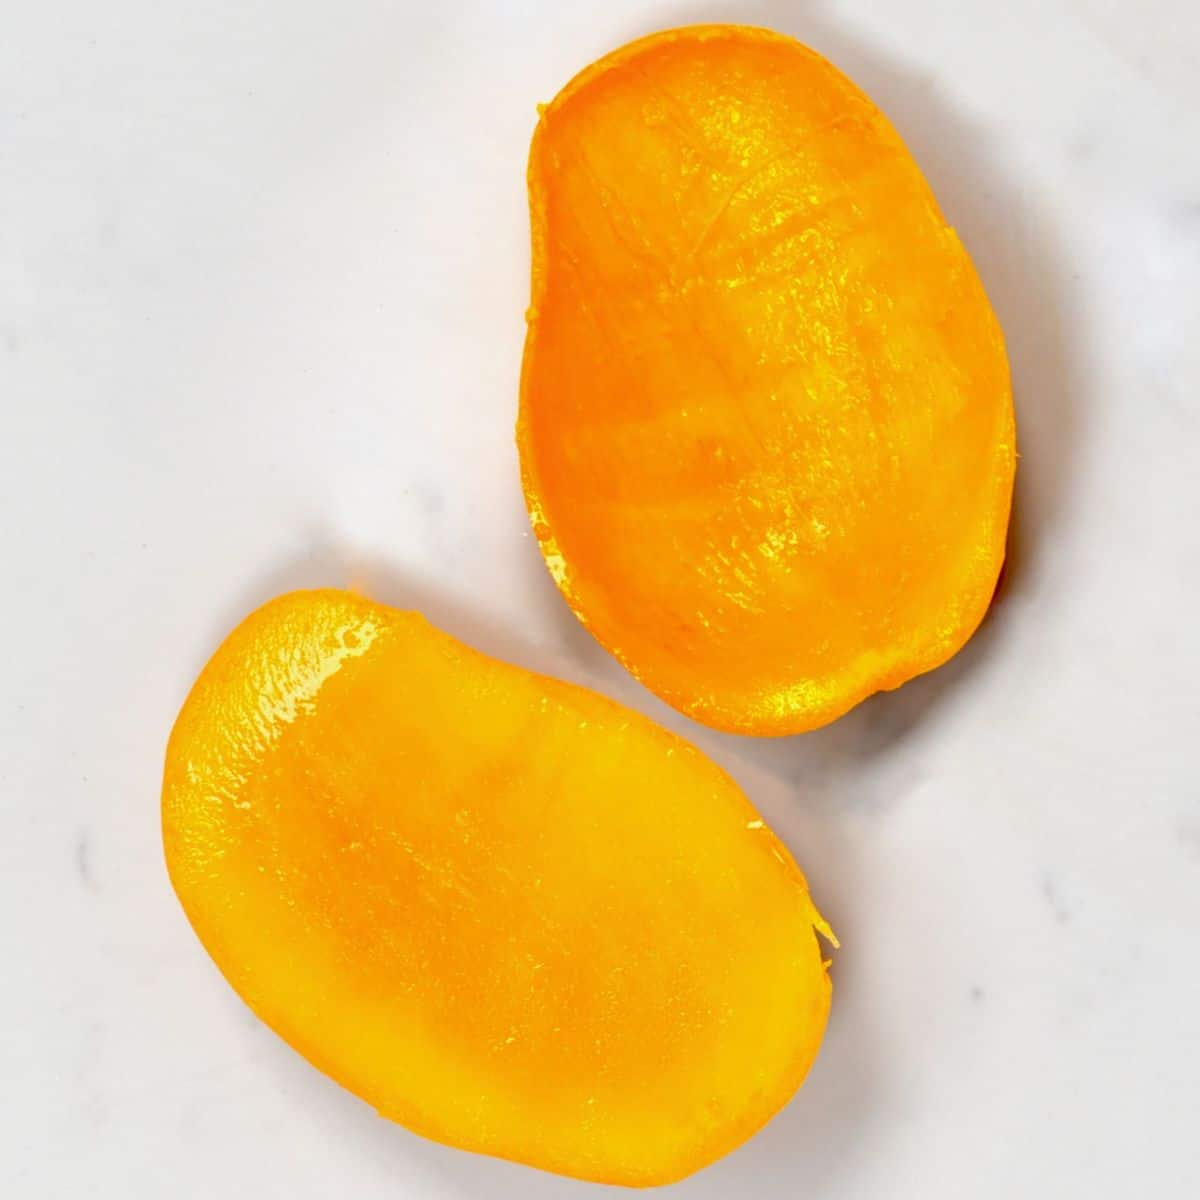 Two mango halves on a flat surface